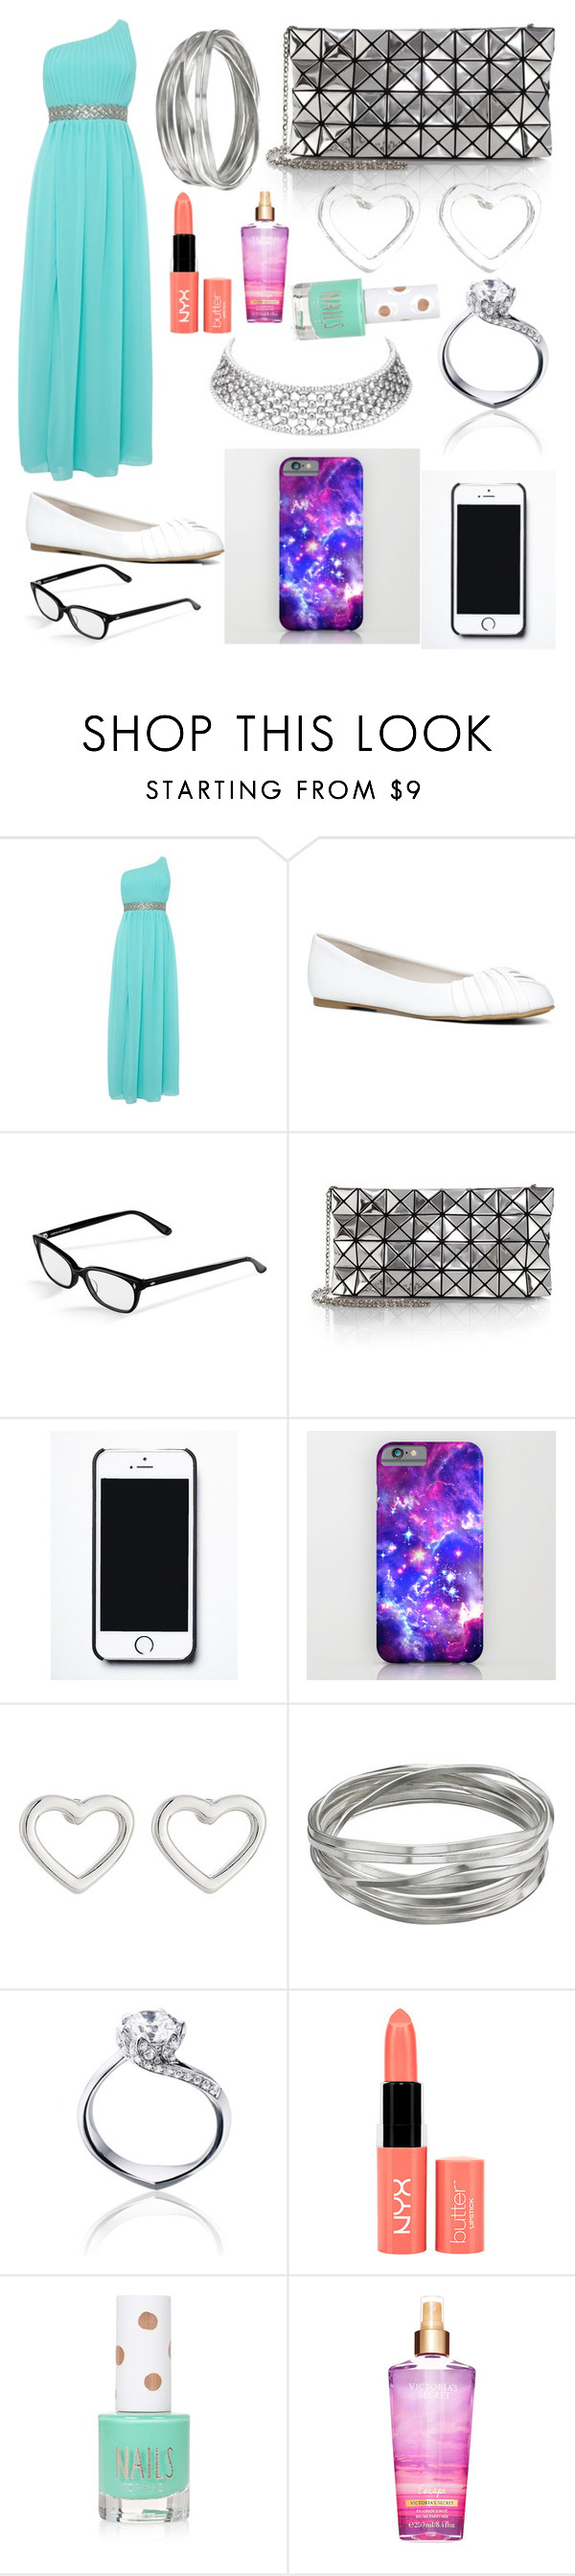 """""""Date night with the bf's family at a fancy restaurant"""" by bentleysage ❤ liked on Polyvore featuring beauty, TFNC, ALDO, Corinne McCormack, Bao Bao by Issey Miyake, Free People, Marc by Marc Jacobs, Whistles, Tomasz Donocik and NYX"""